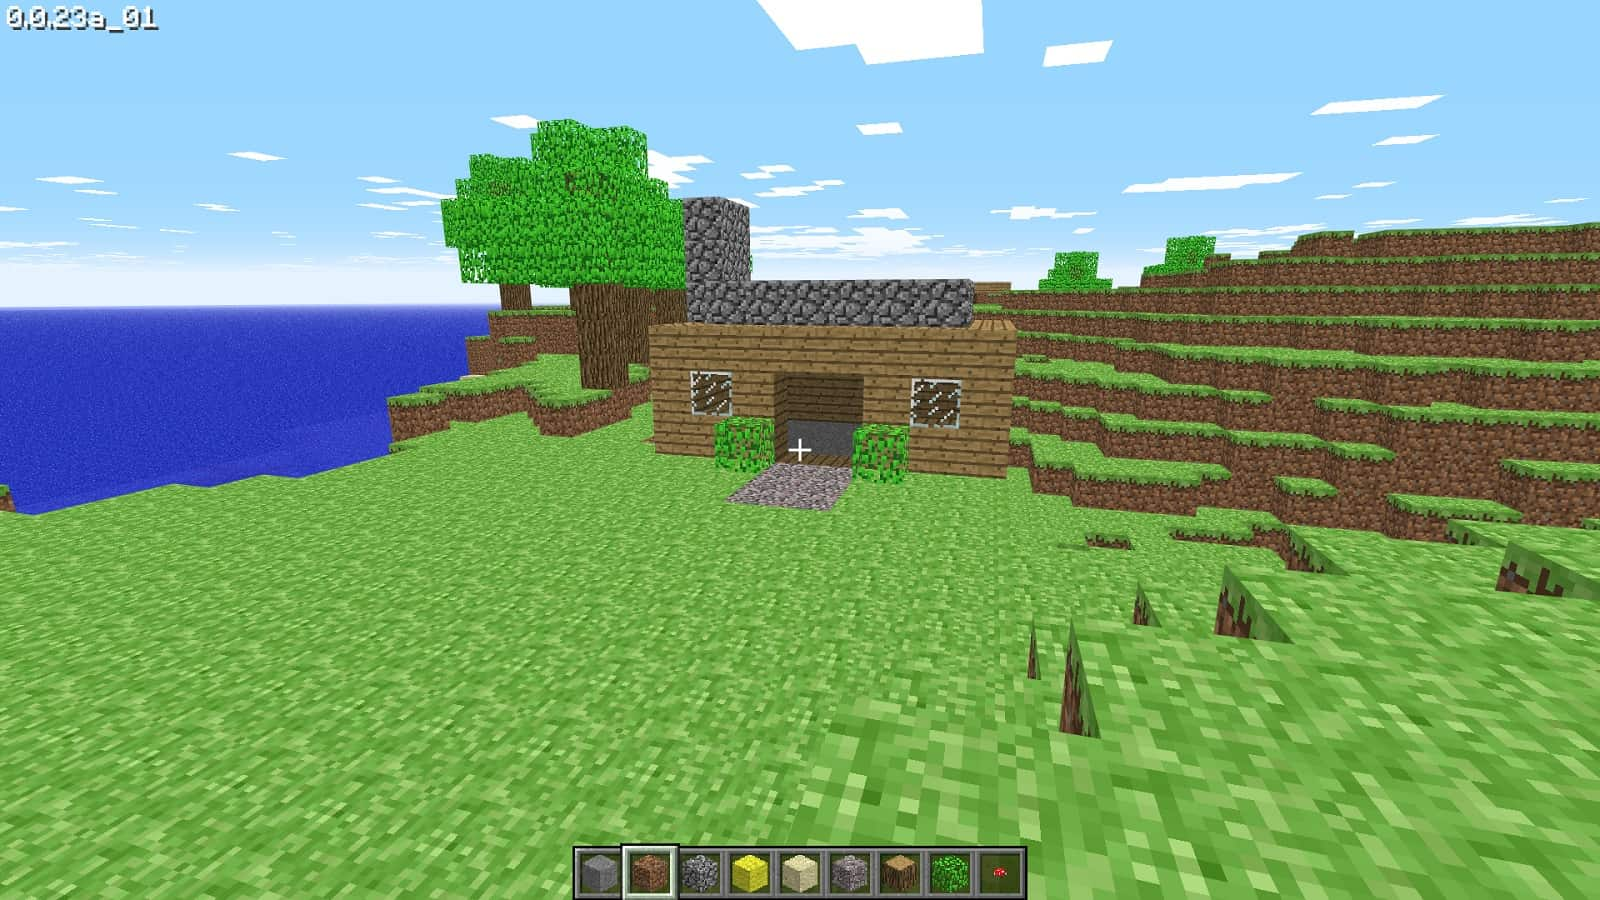 Can Minecraft Users On The Nintendo Switch Play With Pc Users